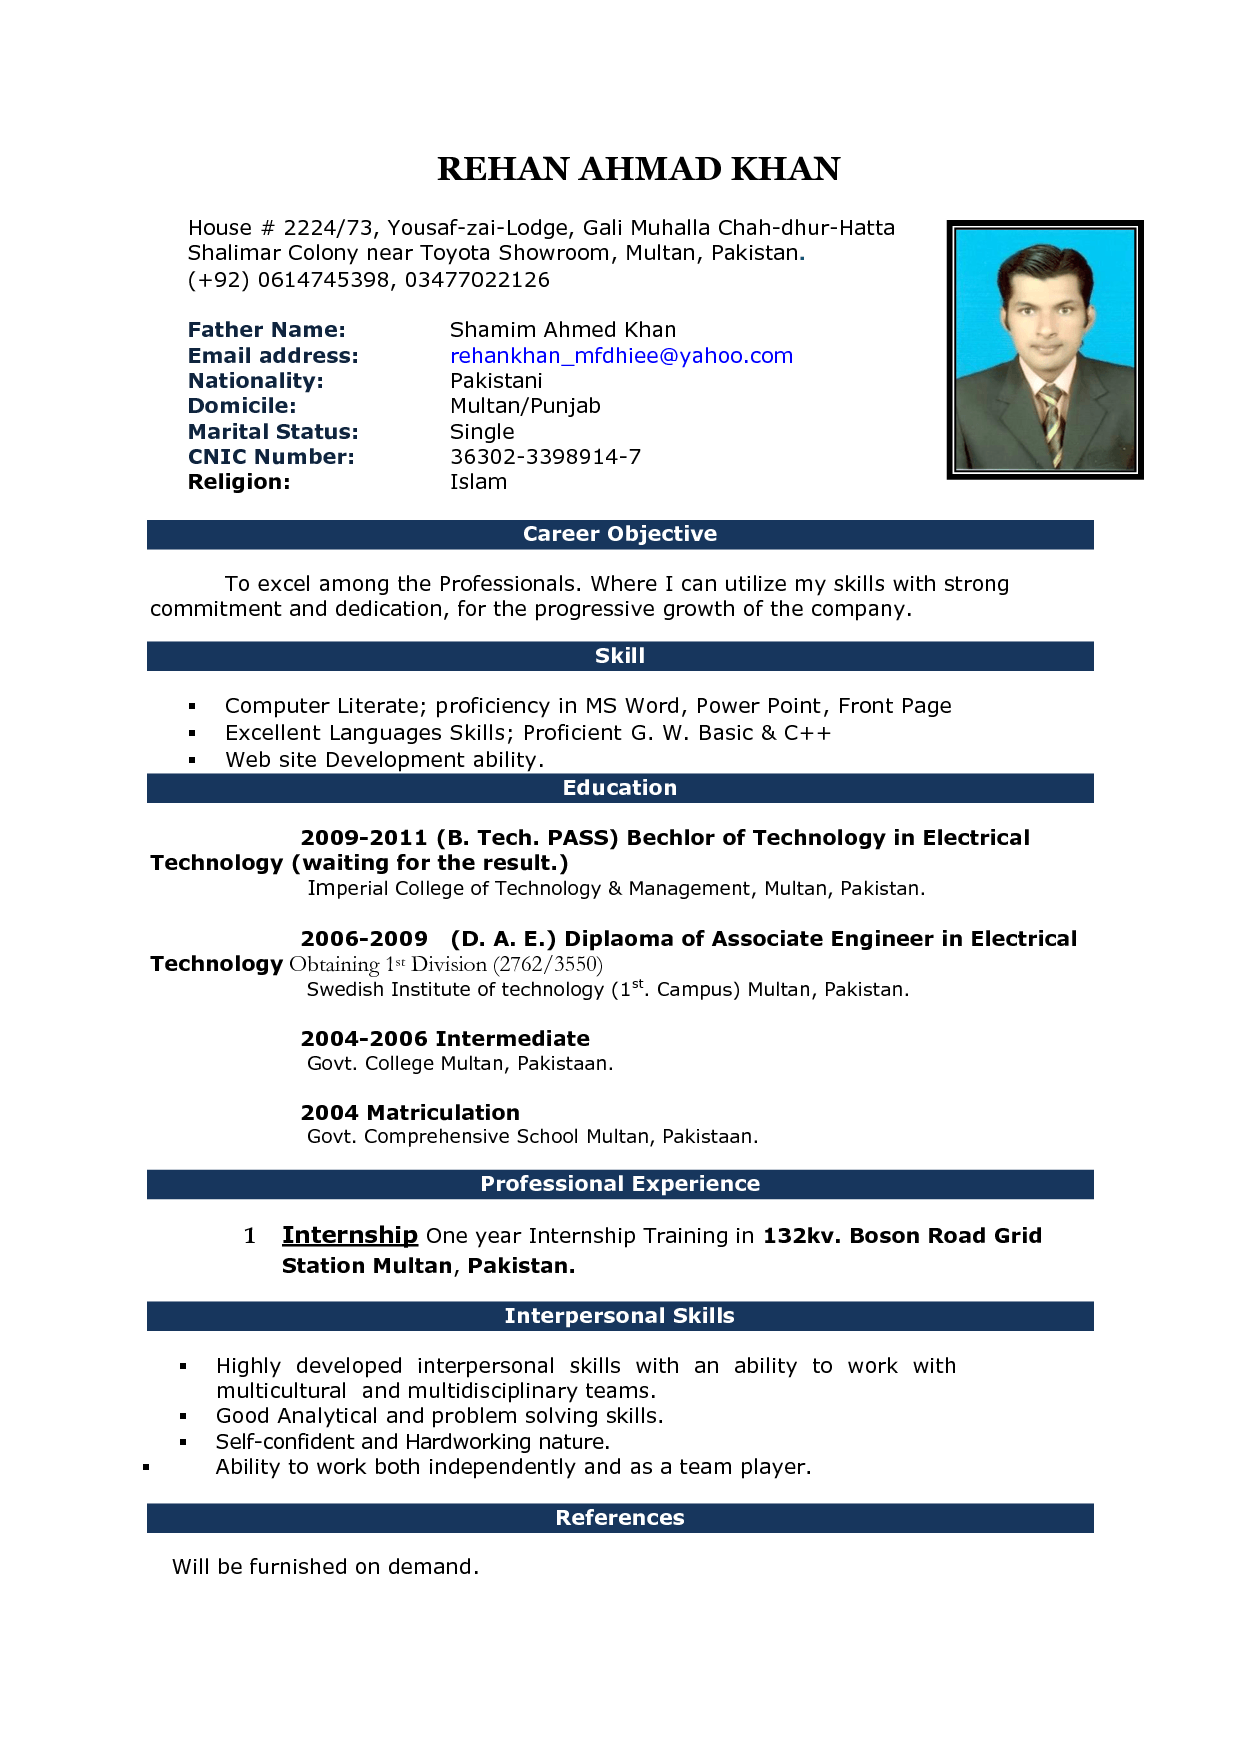 Cv sample format in ms word resume formatting in word resume sample cv sample format in ms word resume formatting in word resume sample resume in ms word format free downloadg 12411753 yelopaper Image collections